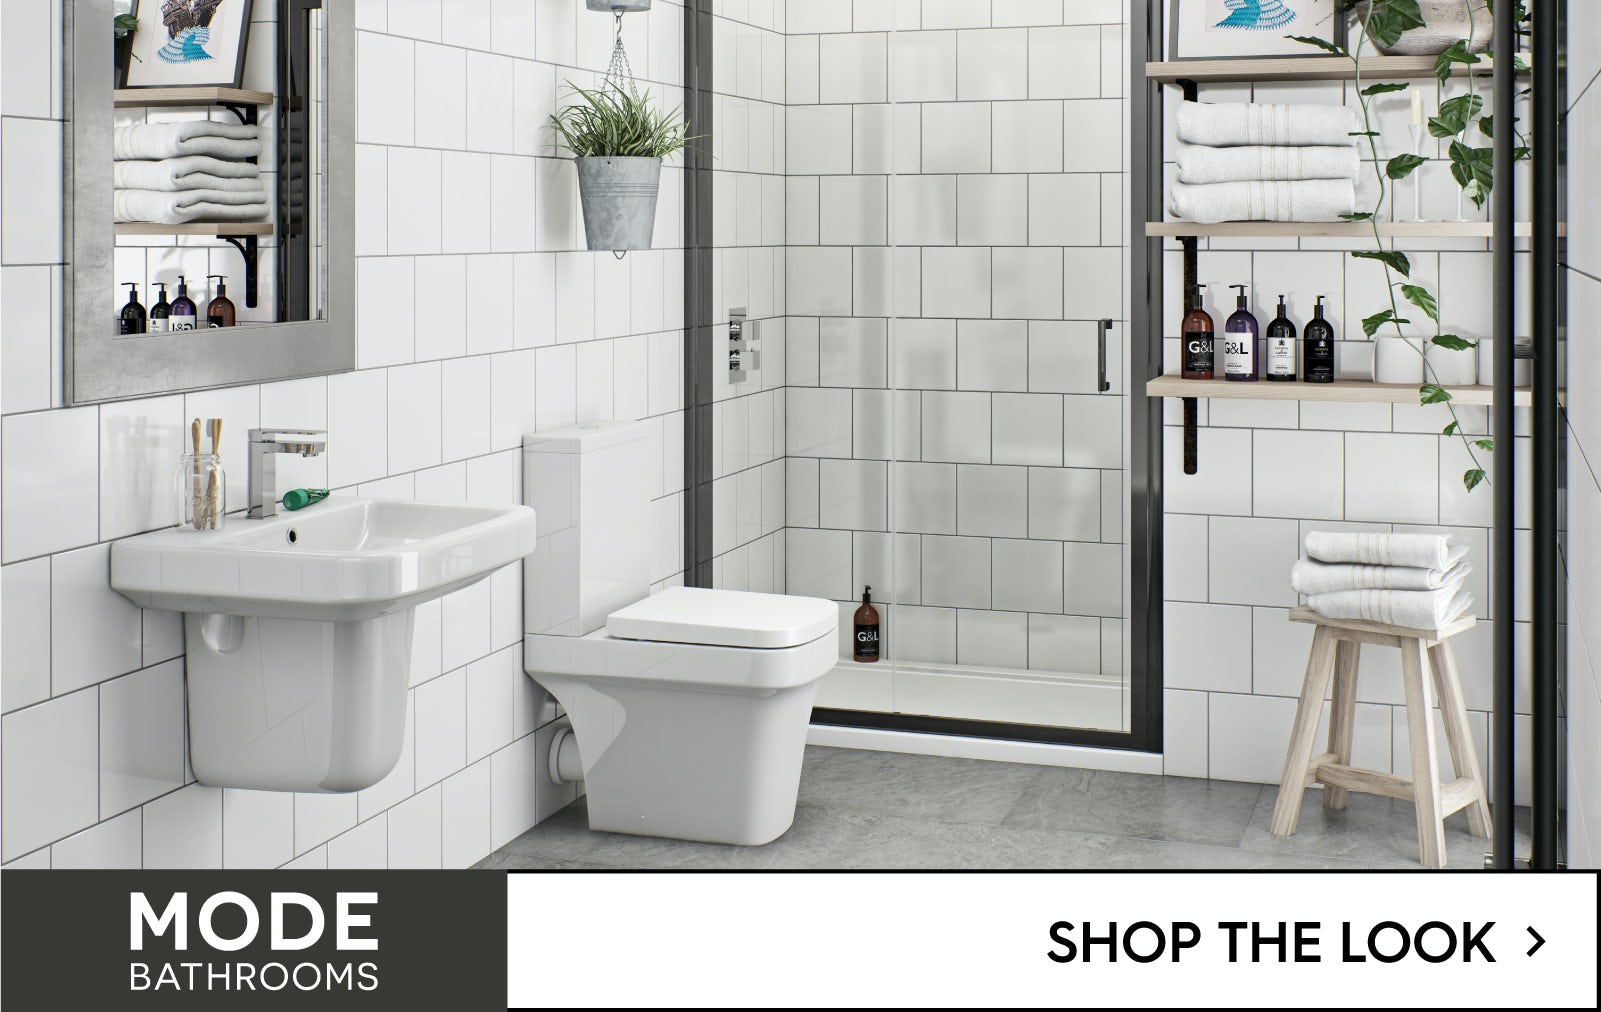 Mode Bathrooms - shop the look